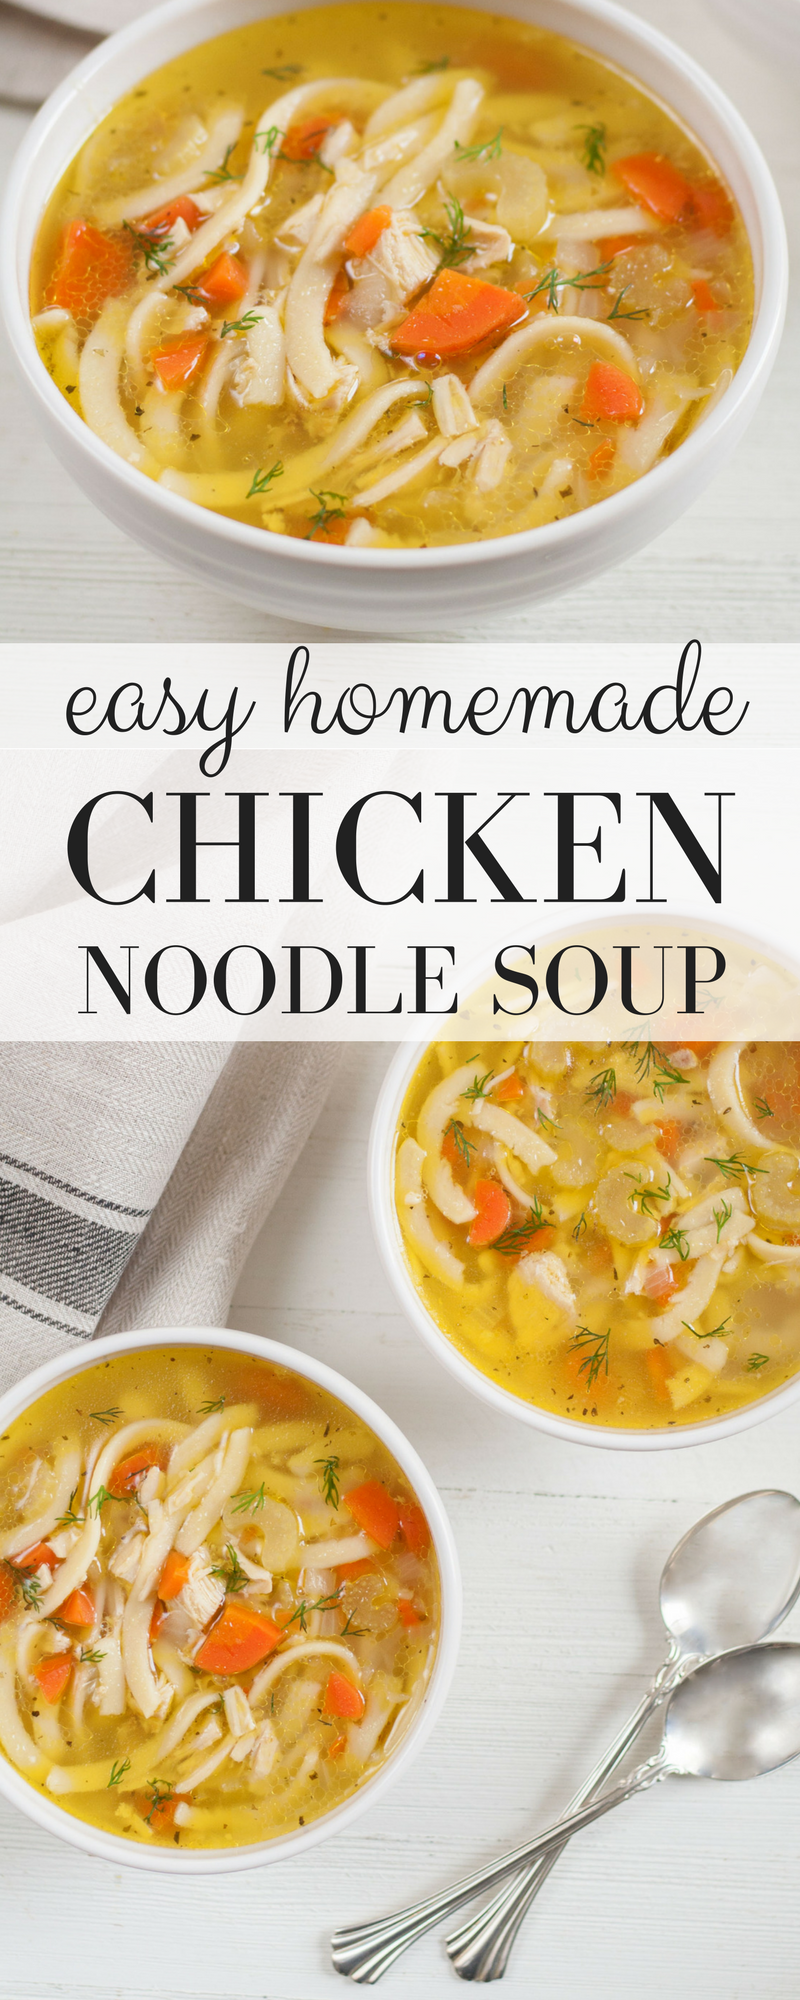 bit-and-bauble-easy-healthy-homemade-chicken-noodle-soup-recipe-pin.png